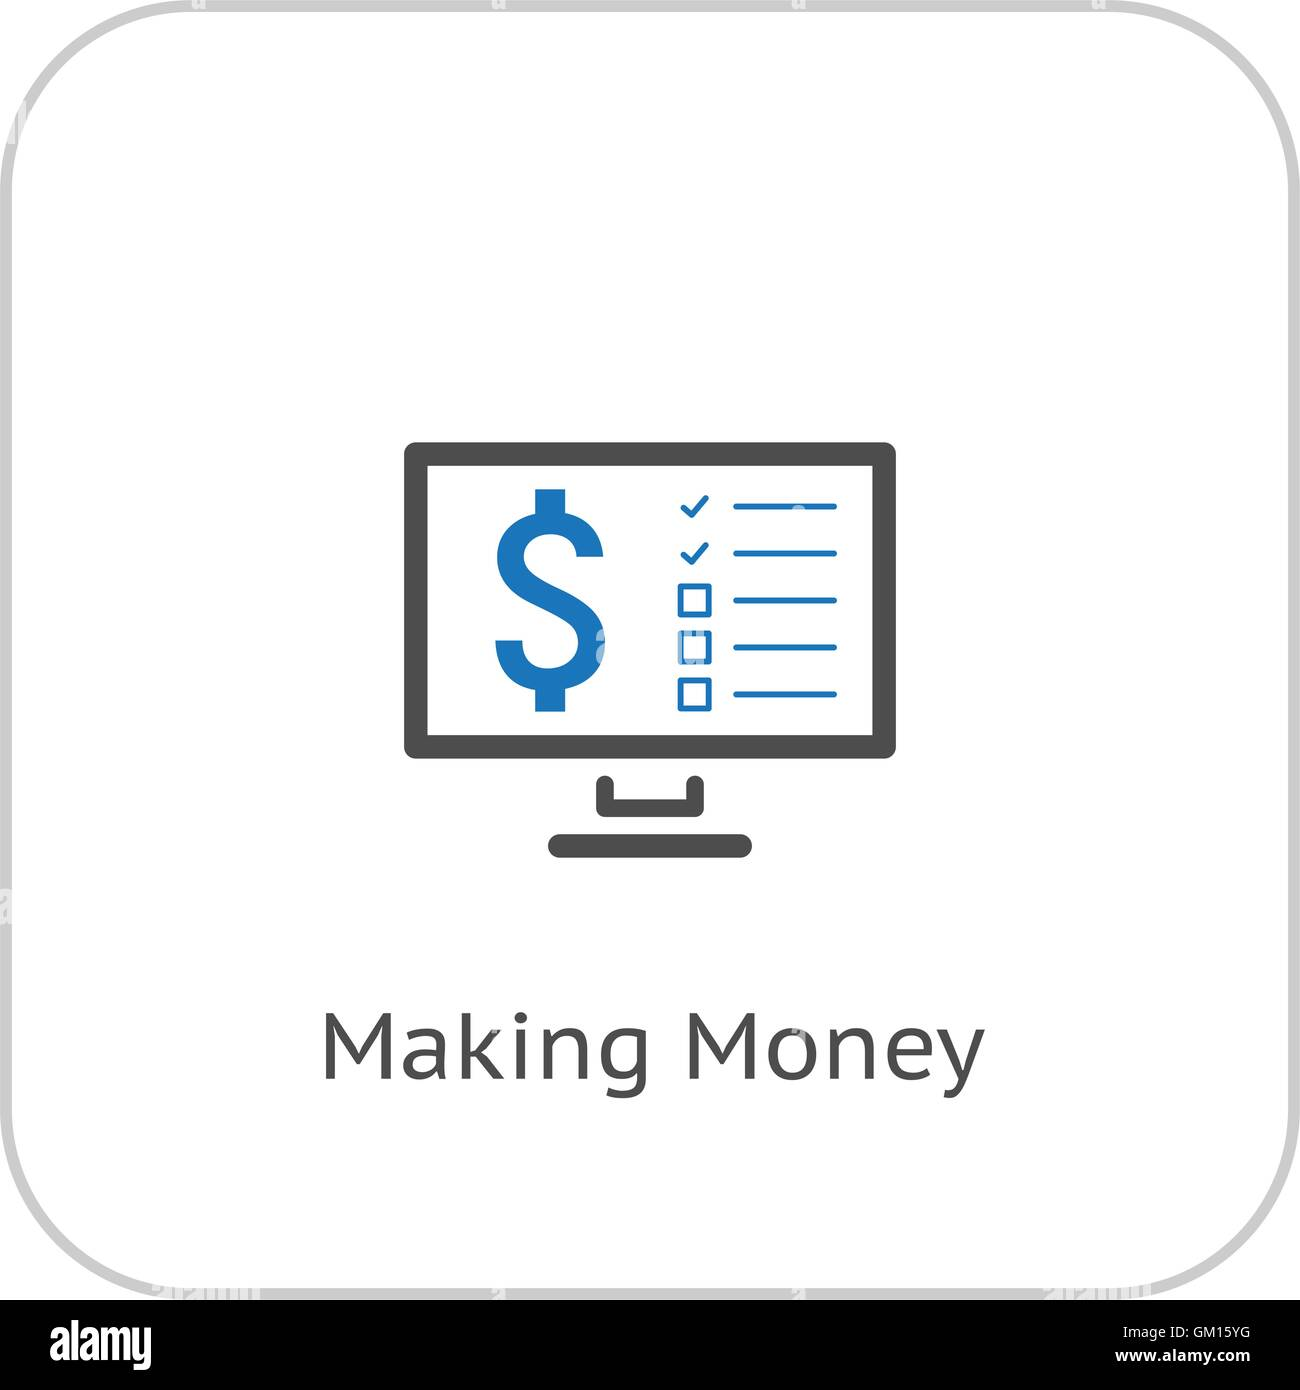 Making Money Icon. Business Concept. Flat Design. - Stock Image